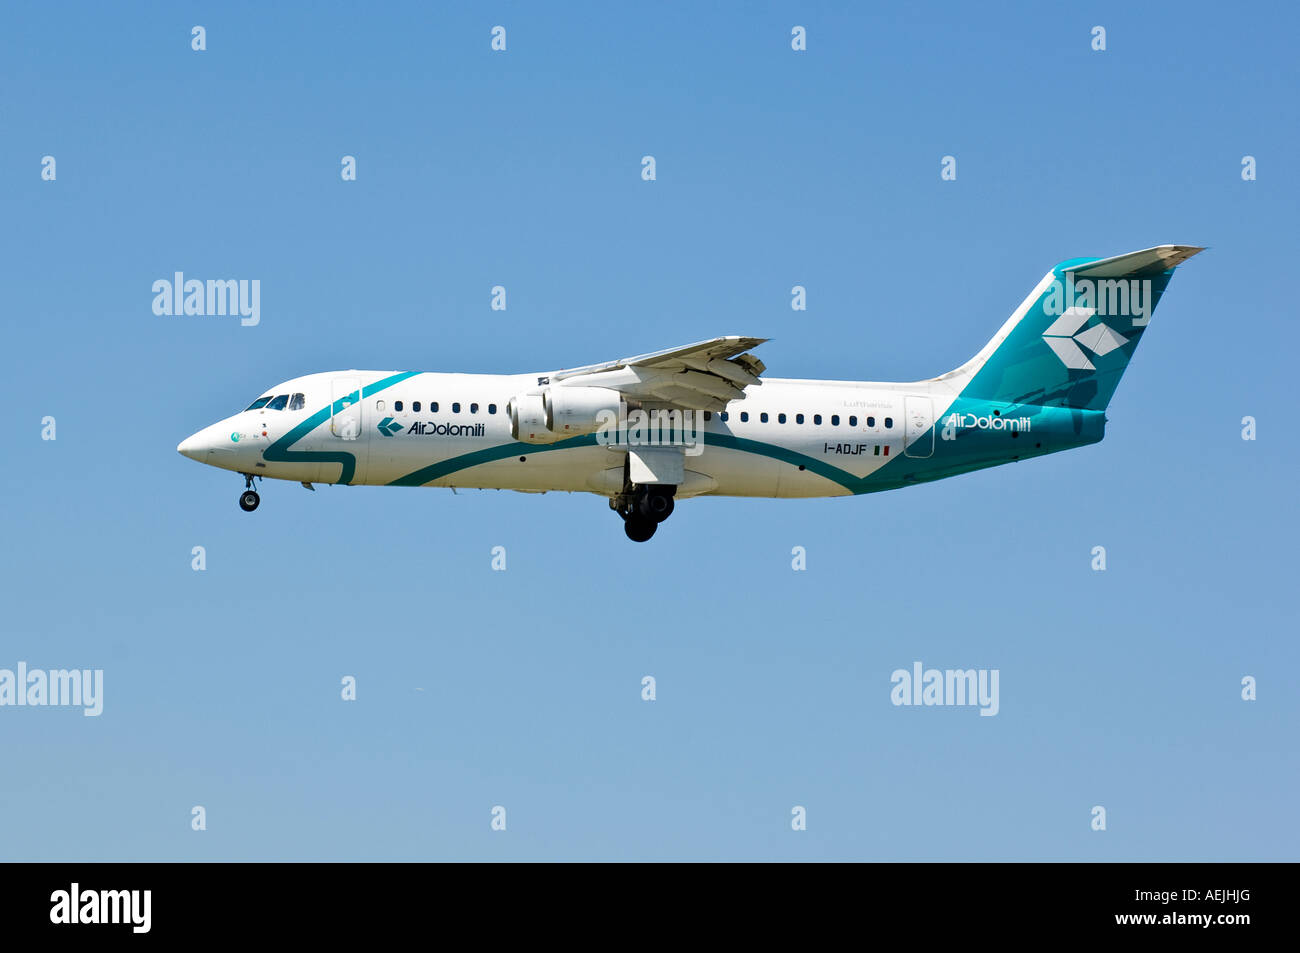 Air Dolomiti BAe 146-300 - Stock Image